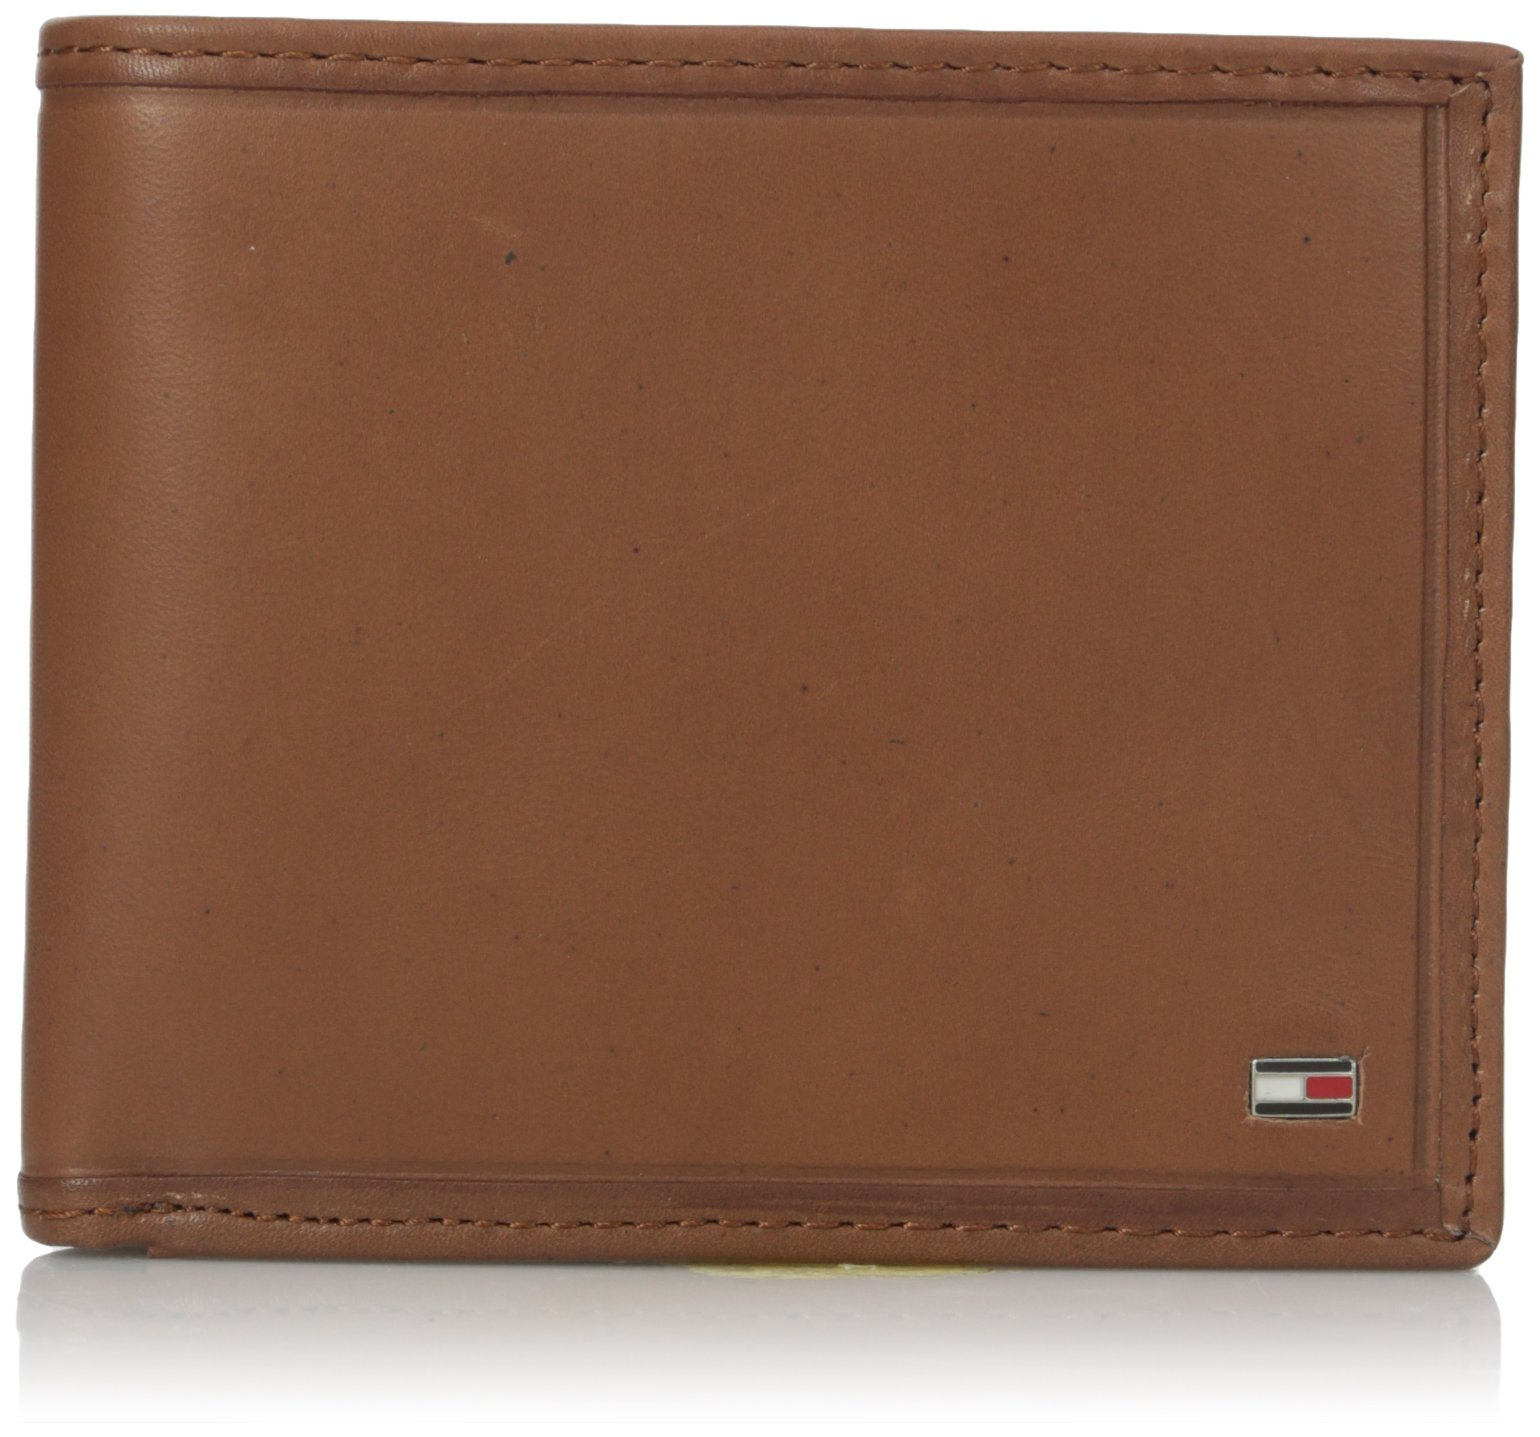 Tommy Hilfiger Men's Leather Passcase Wallet,Sand by Tommy Hilfiger